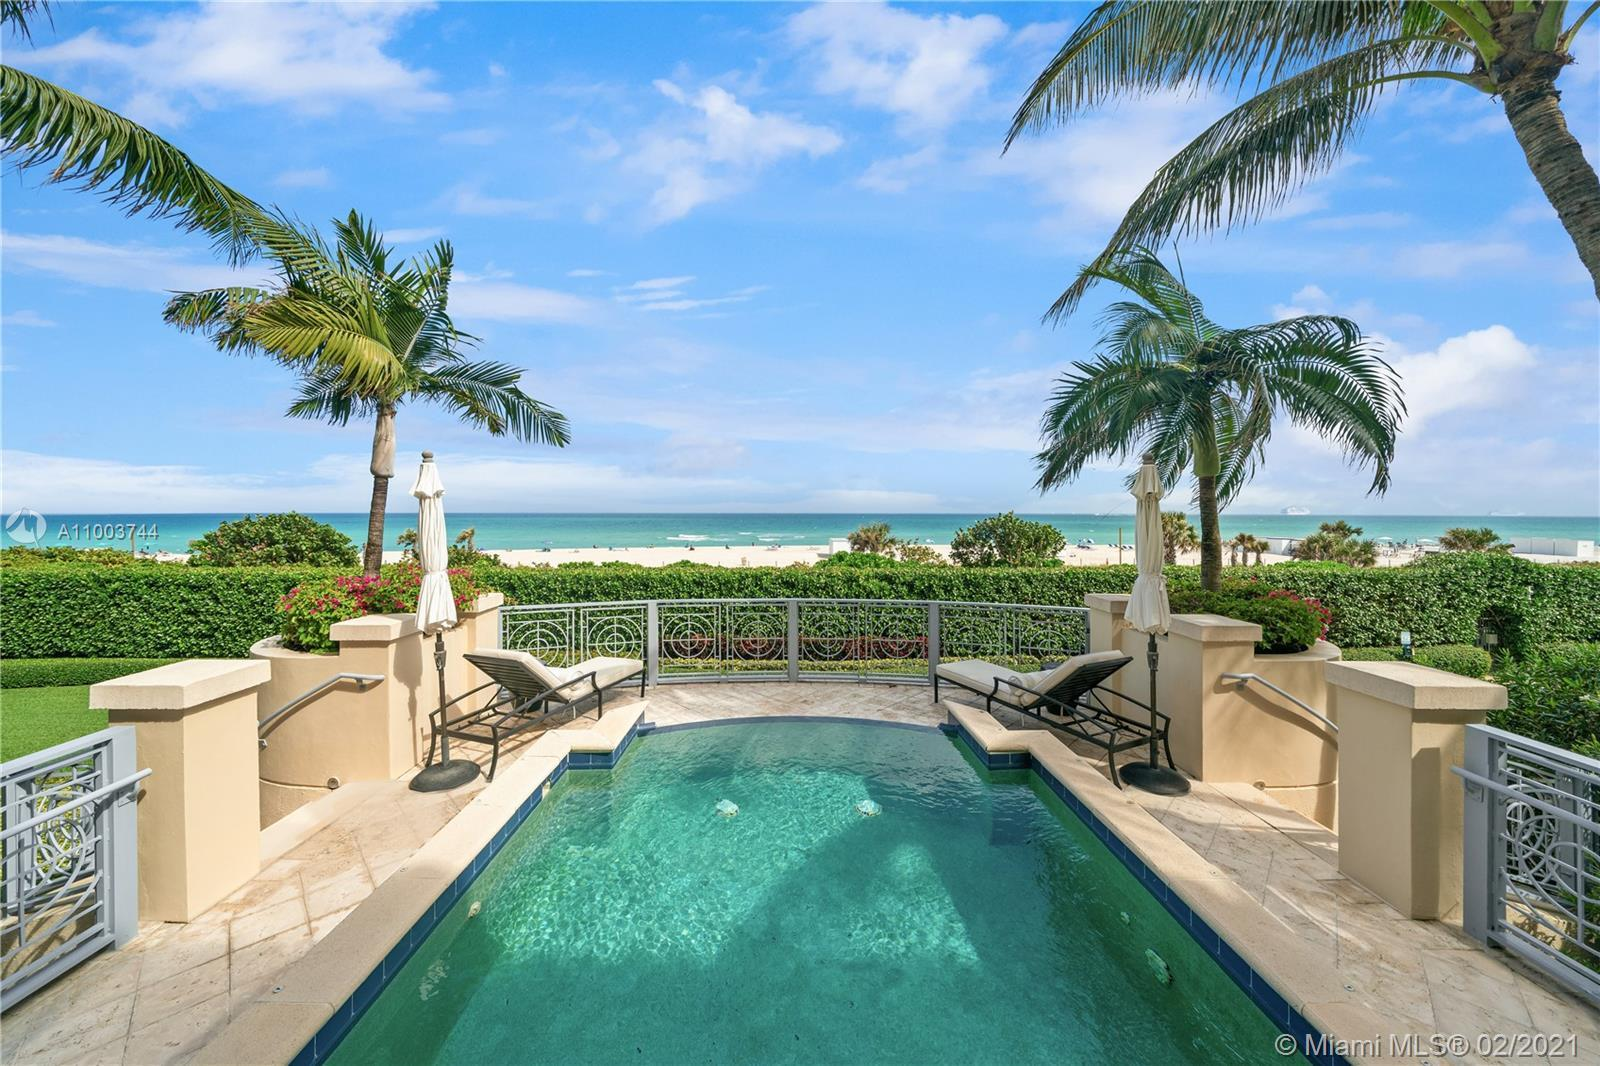 Your own private beachfront villa in the heart of Millionaires row. Breathtaking, unobstructed ocean